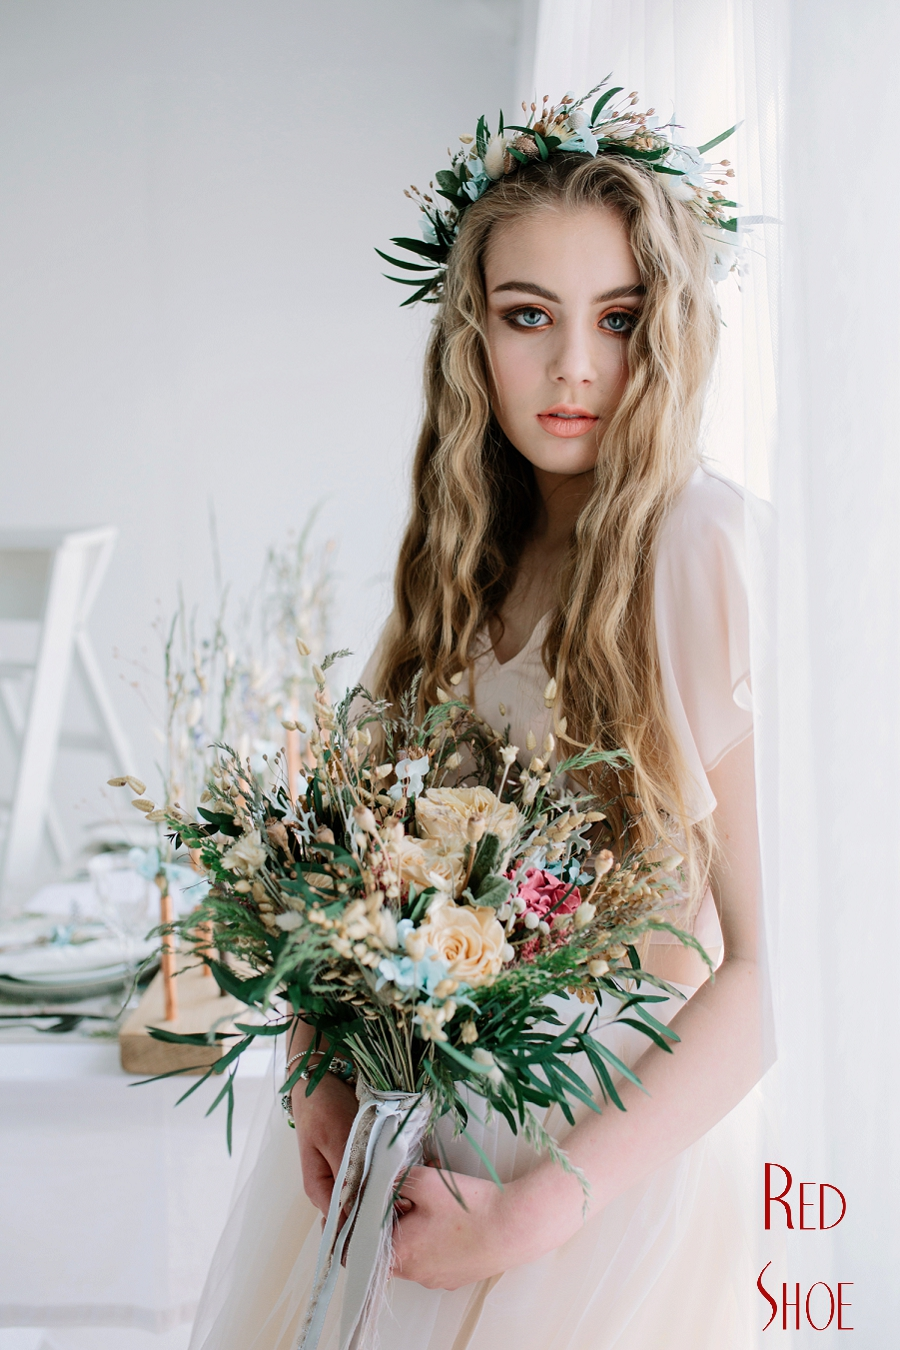 Boho bride, Glam Boho bride, Wedding inspiration, Styled wedding photo shoot, wedding ideas, wedding flower ideas, wedding photography, dried wedding flowers, boho bride makeup ideas_0027.jpg